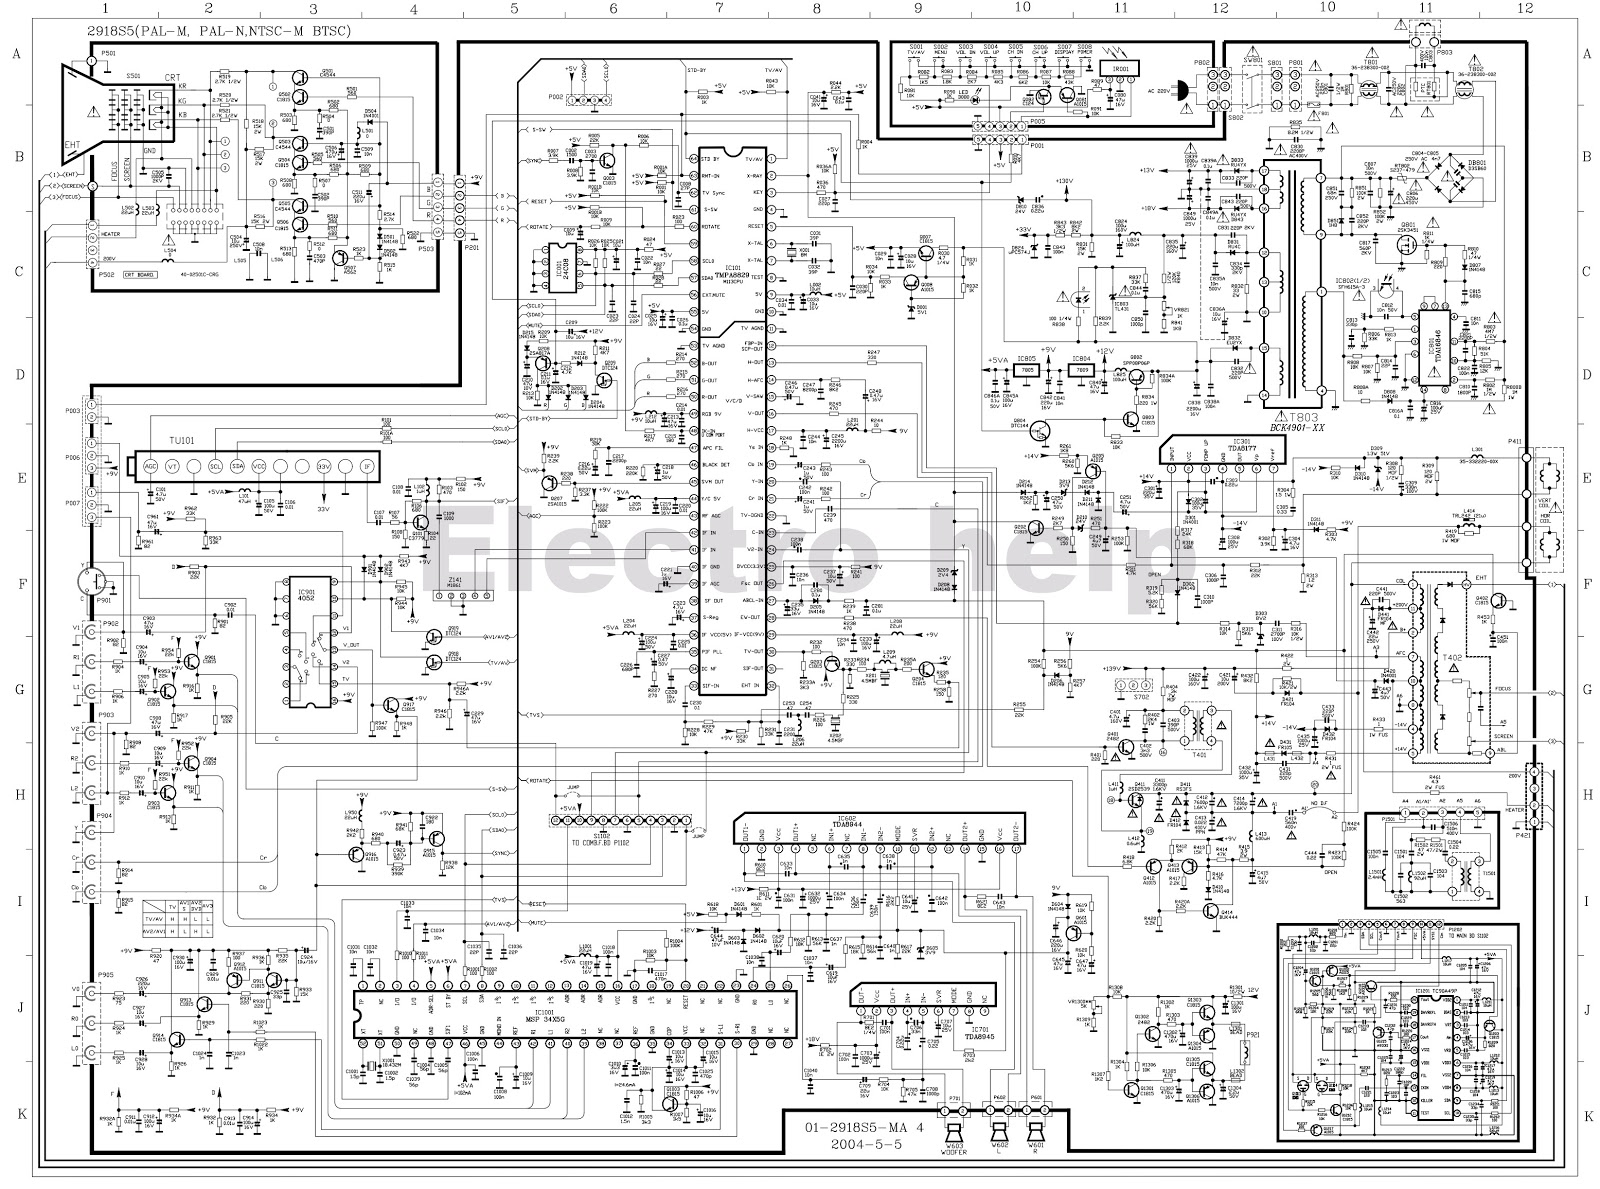 small resolution of sanyo tv wiring diagram wiring diagram expert sanyo tv wiring diagram